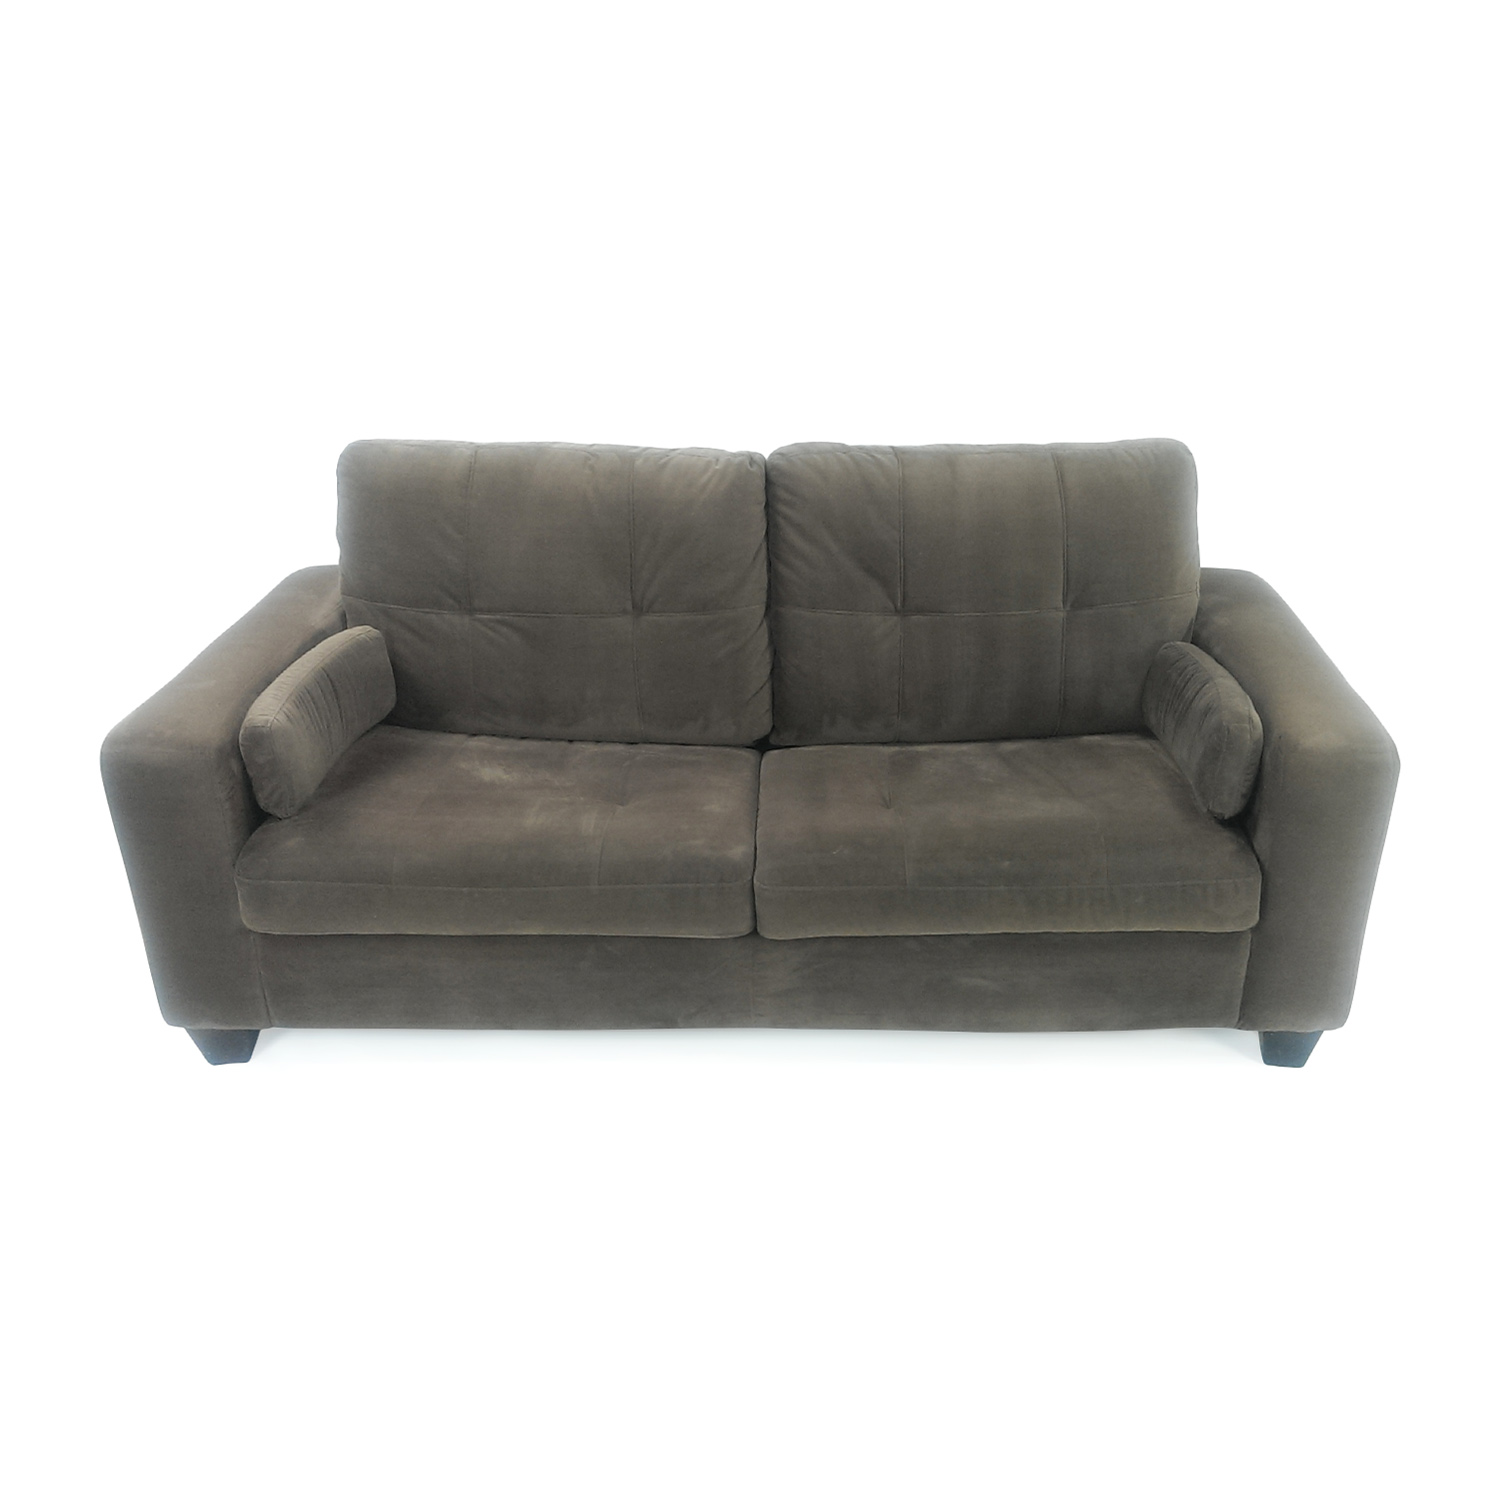 buy Jennifer Convertibles Microsuede Pull Out Sofa Jennifer Convertibles Sofas